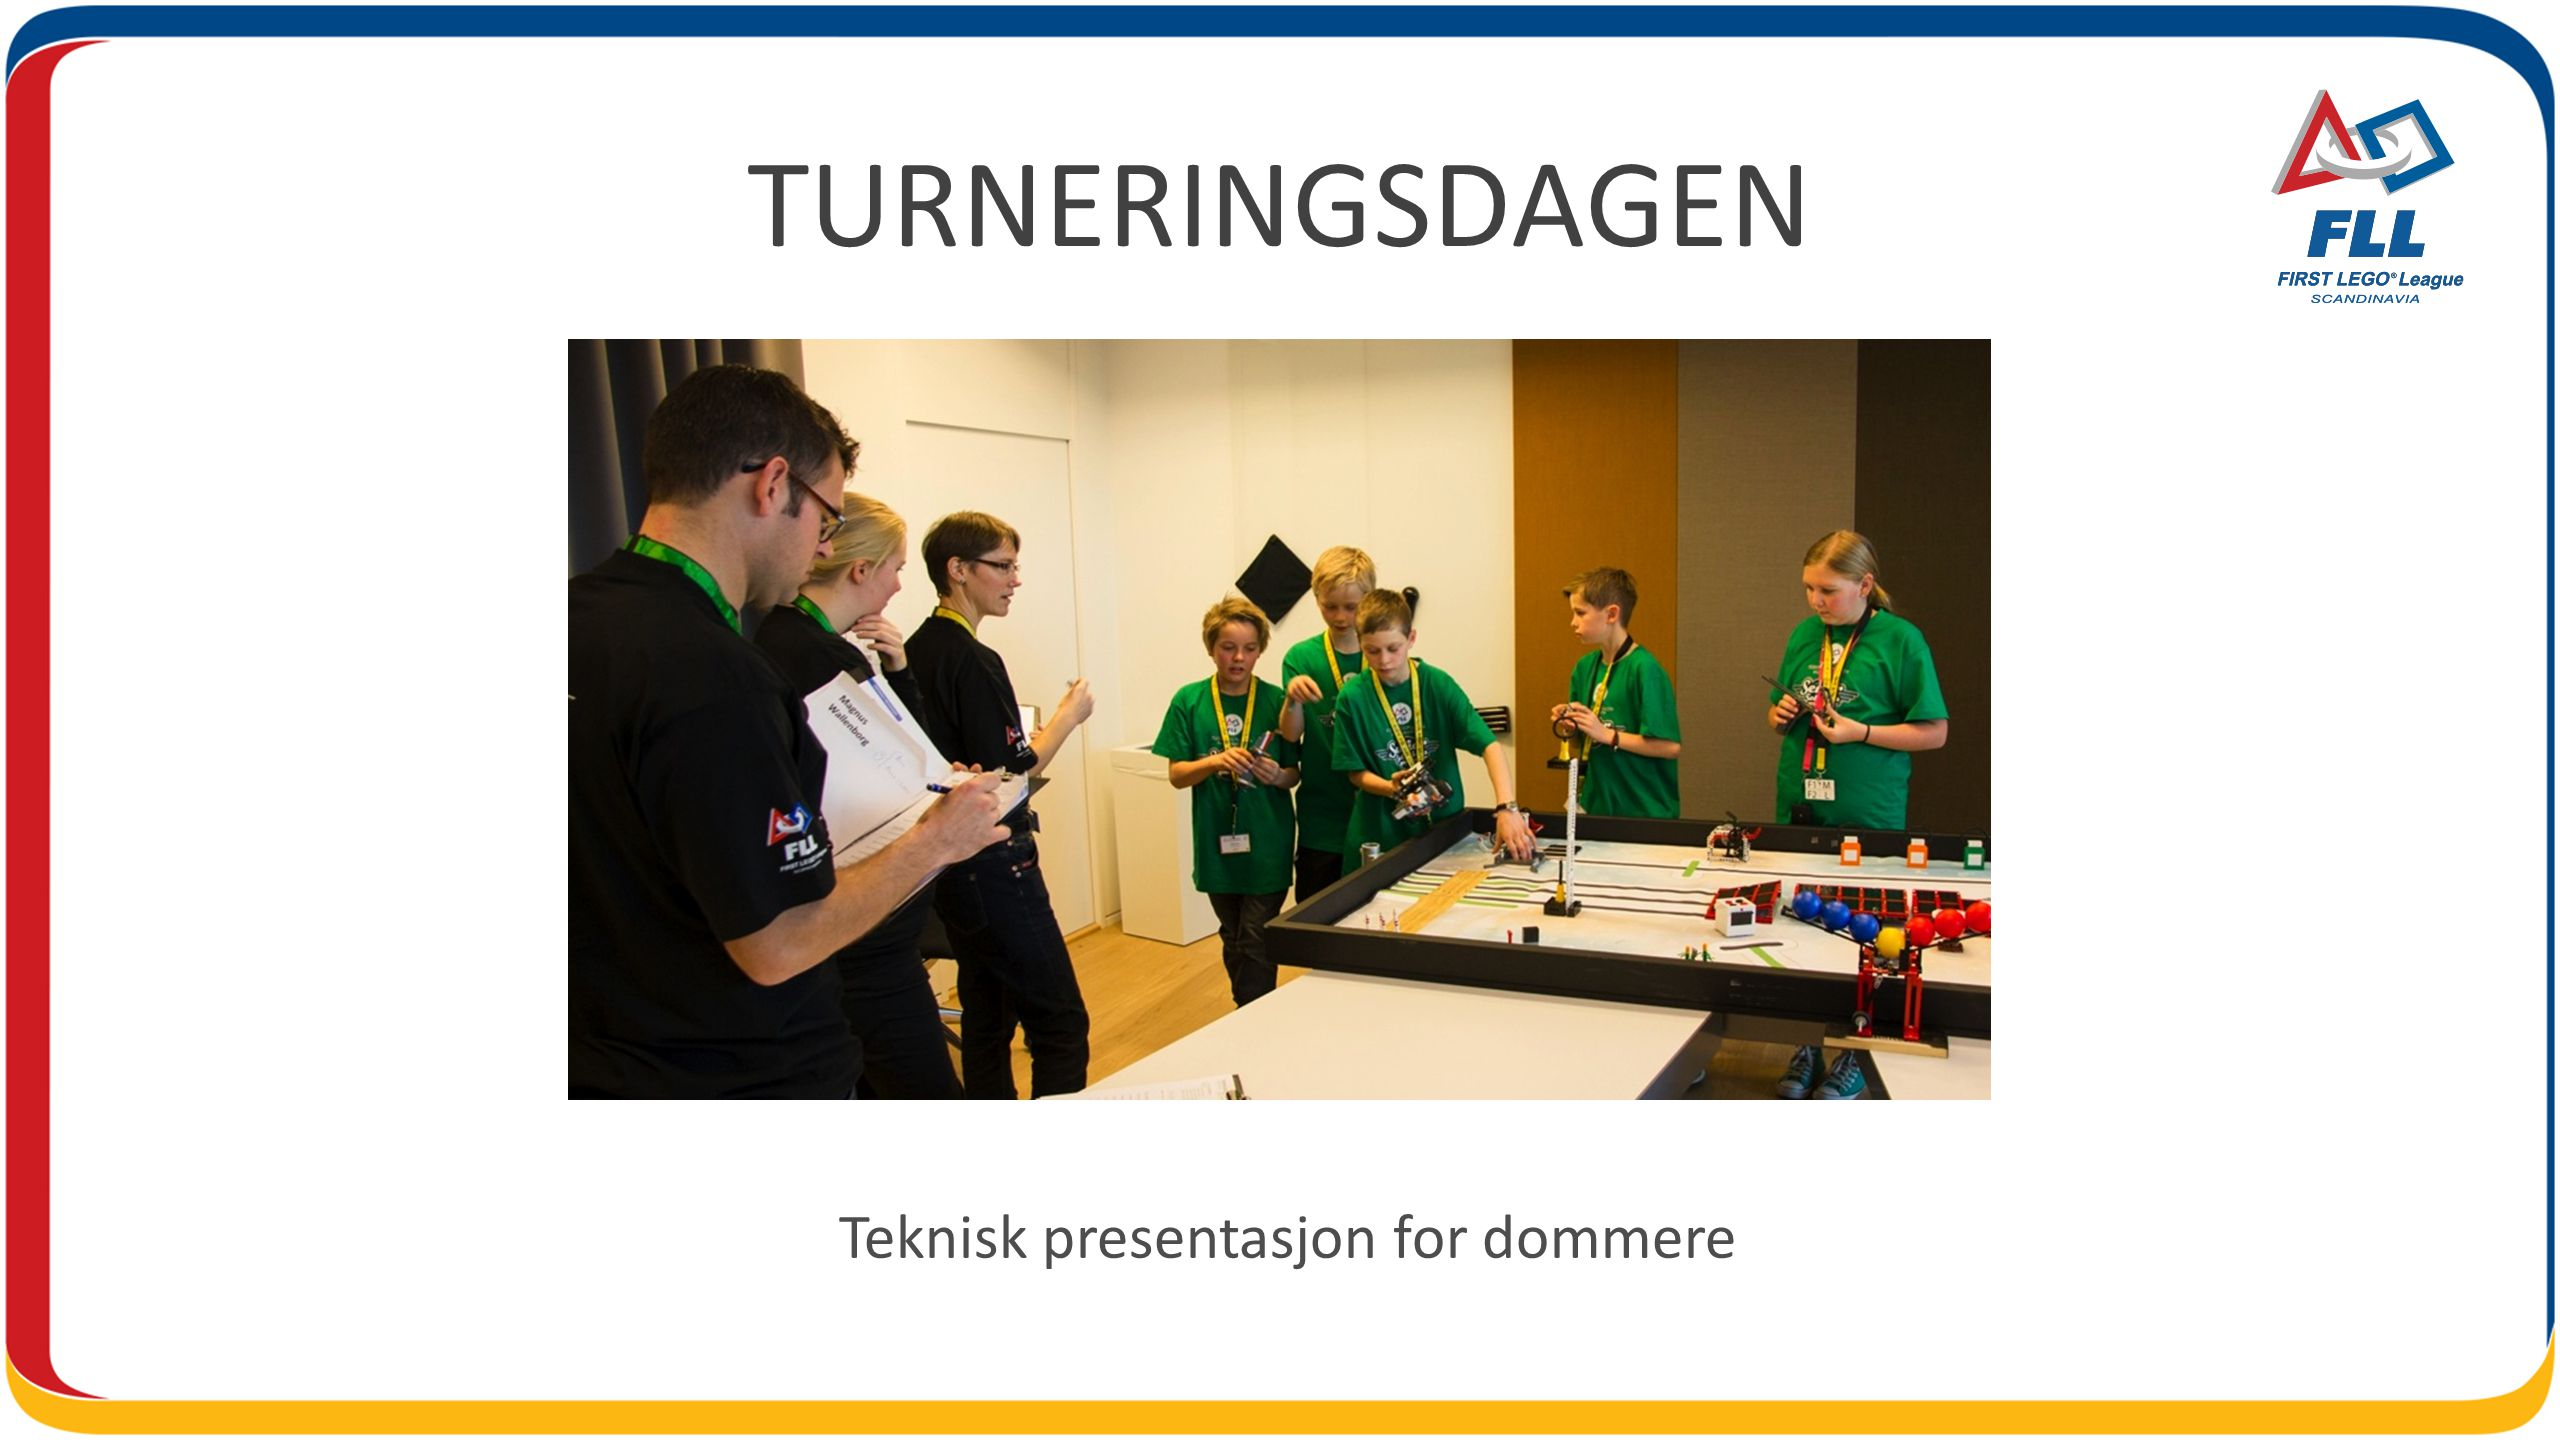 TURNERINGSDAGEN Teknisk presentasjon for dommere